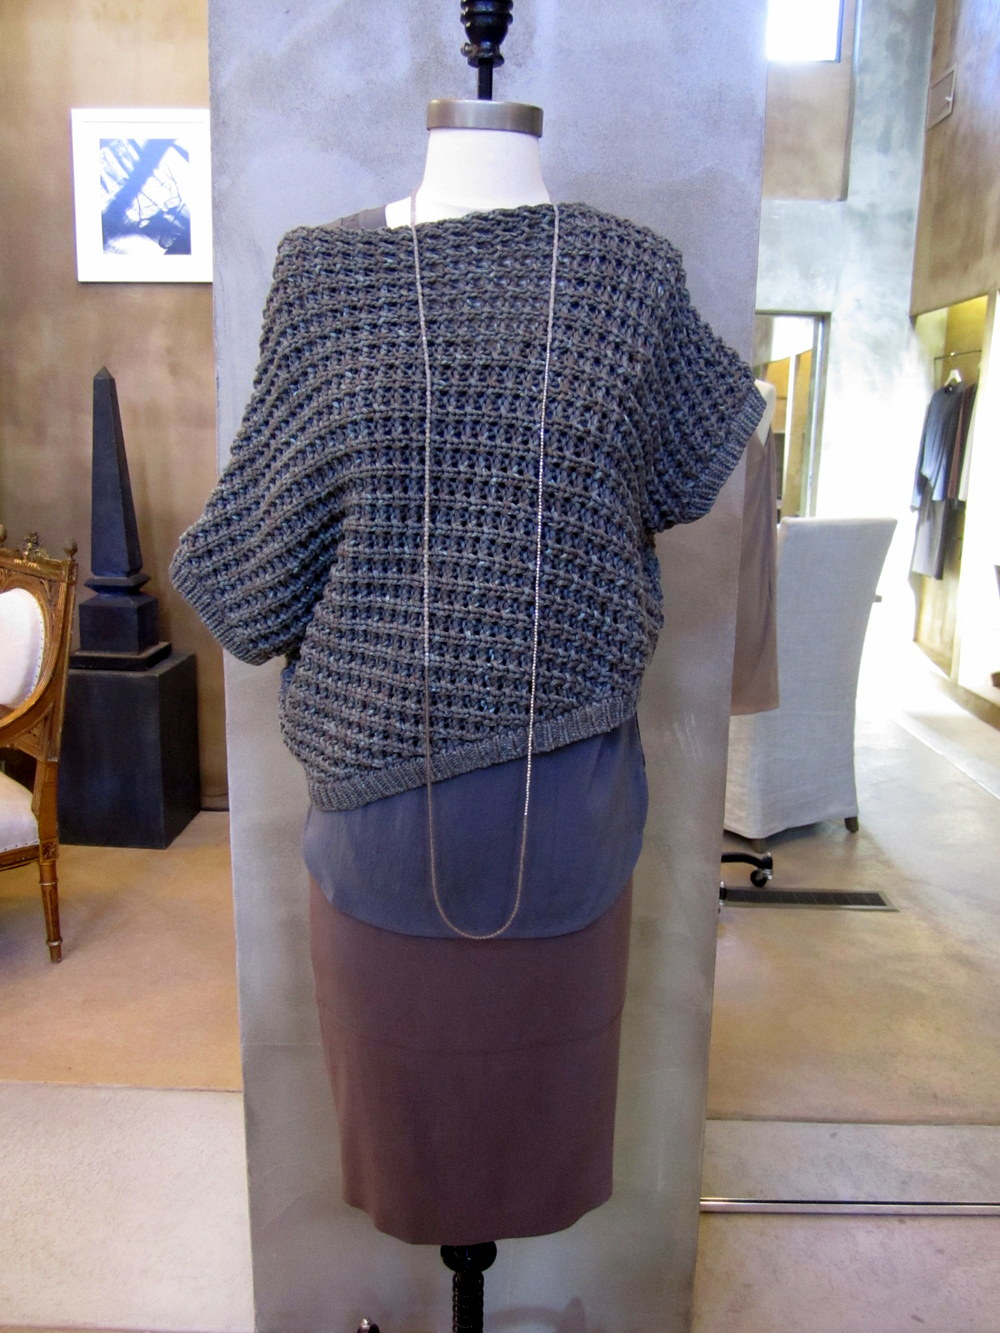 Brunello Cucinelli Cotton Chunky Knit Open Weave Pullover. Army. $1120. Available in Medium and Large. Reversible Silk Scoop Neck Top. Marine. $795. Available in Medium, Large and X-Large. Silk Skirt with Leather Panel Detail. Bark. $1130. Available in 6, 8 and 10. Long Necklace in Moonstone, Sanded Quartz and Brown Grey Zebra. $725. OSFA. Made in Italy.